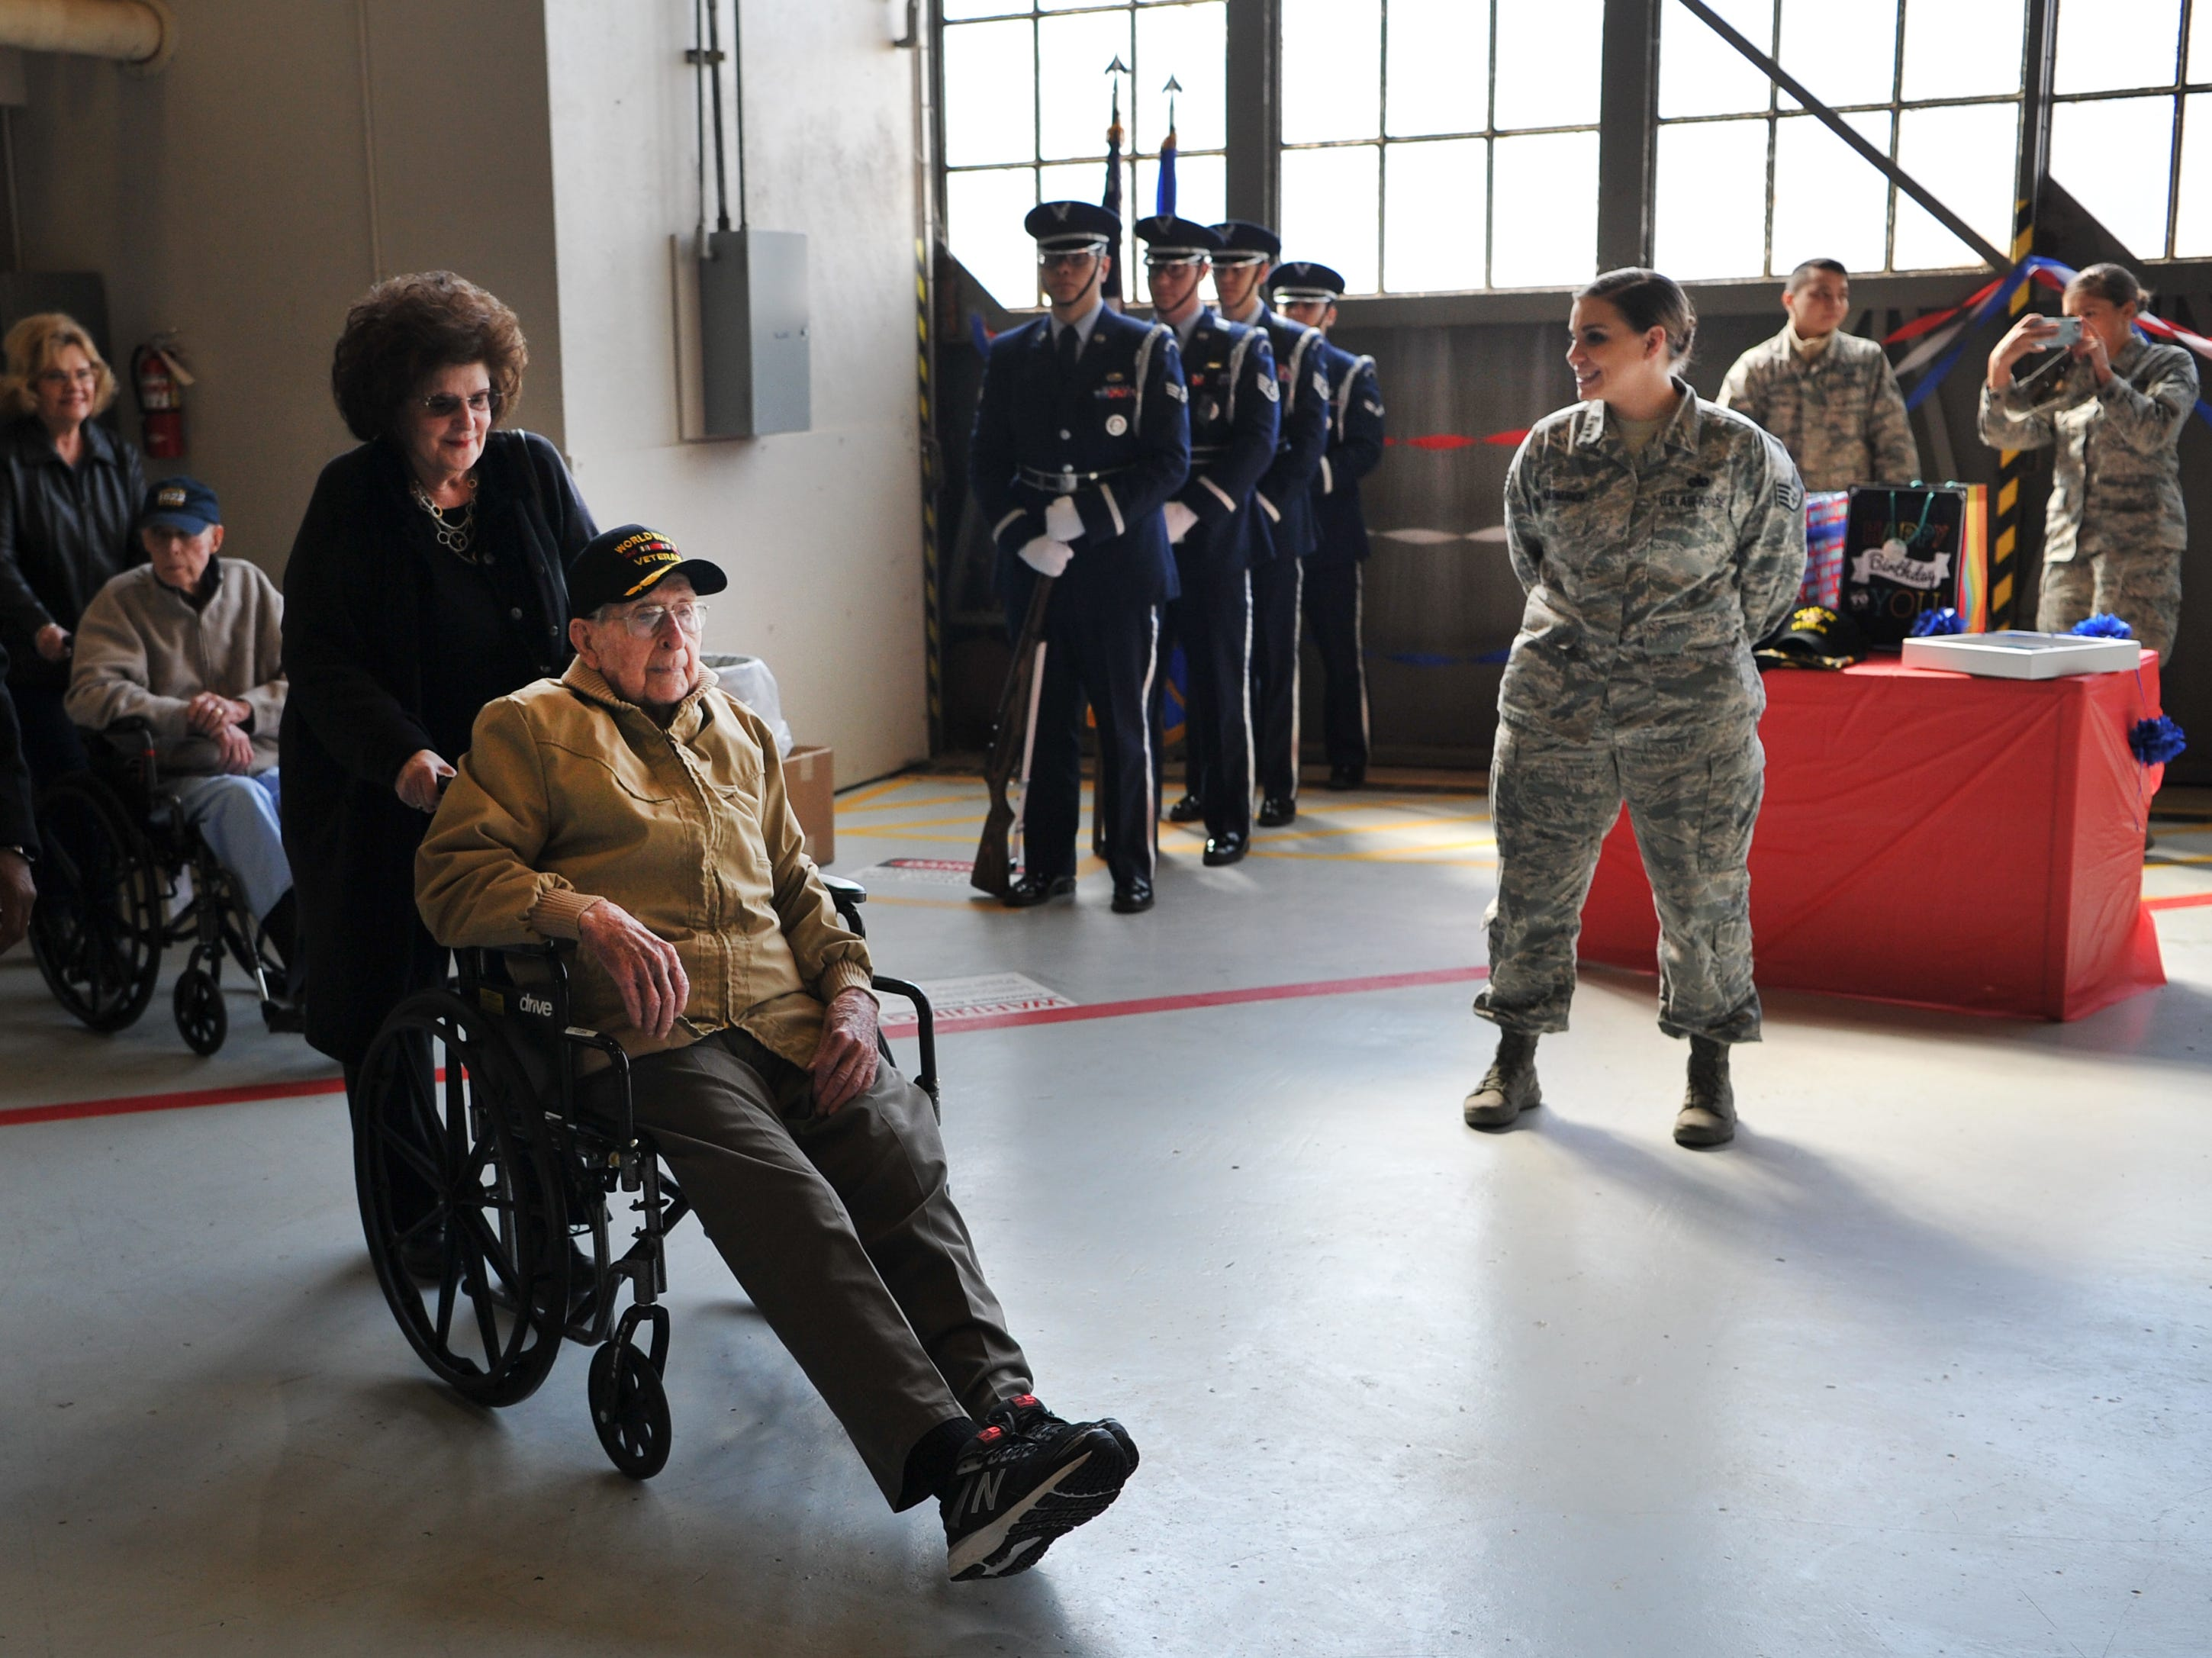 Sheppard Air Force Base helped celebrate Army Air Corps Staff Sgt. Joe Cuba's upcoming 100th birthday hosted by 365th Training Squadron, Thursday afternoon. Cuba became a social media phenomenon after he posted a request for 100 birthday cards for his 100th birthday.